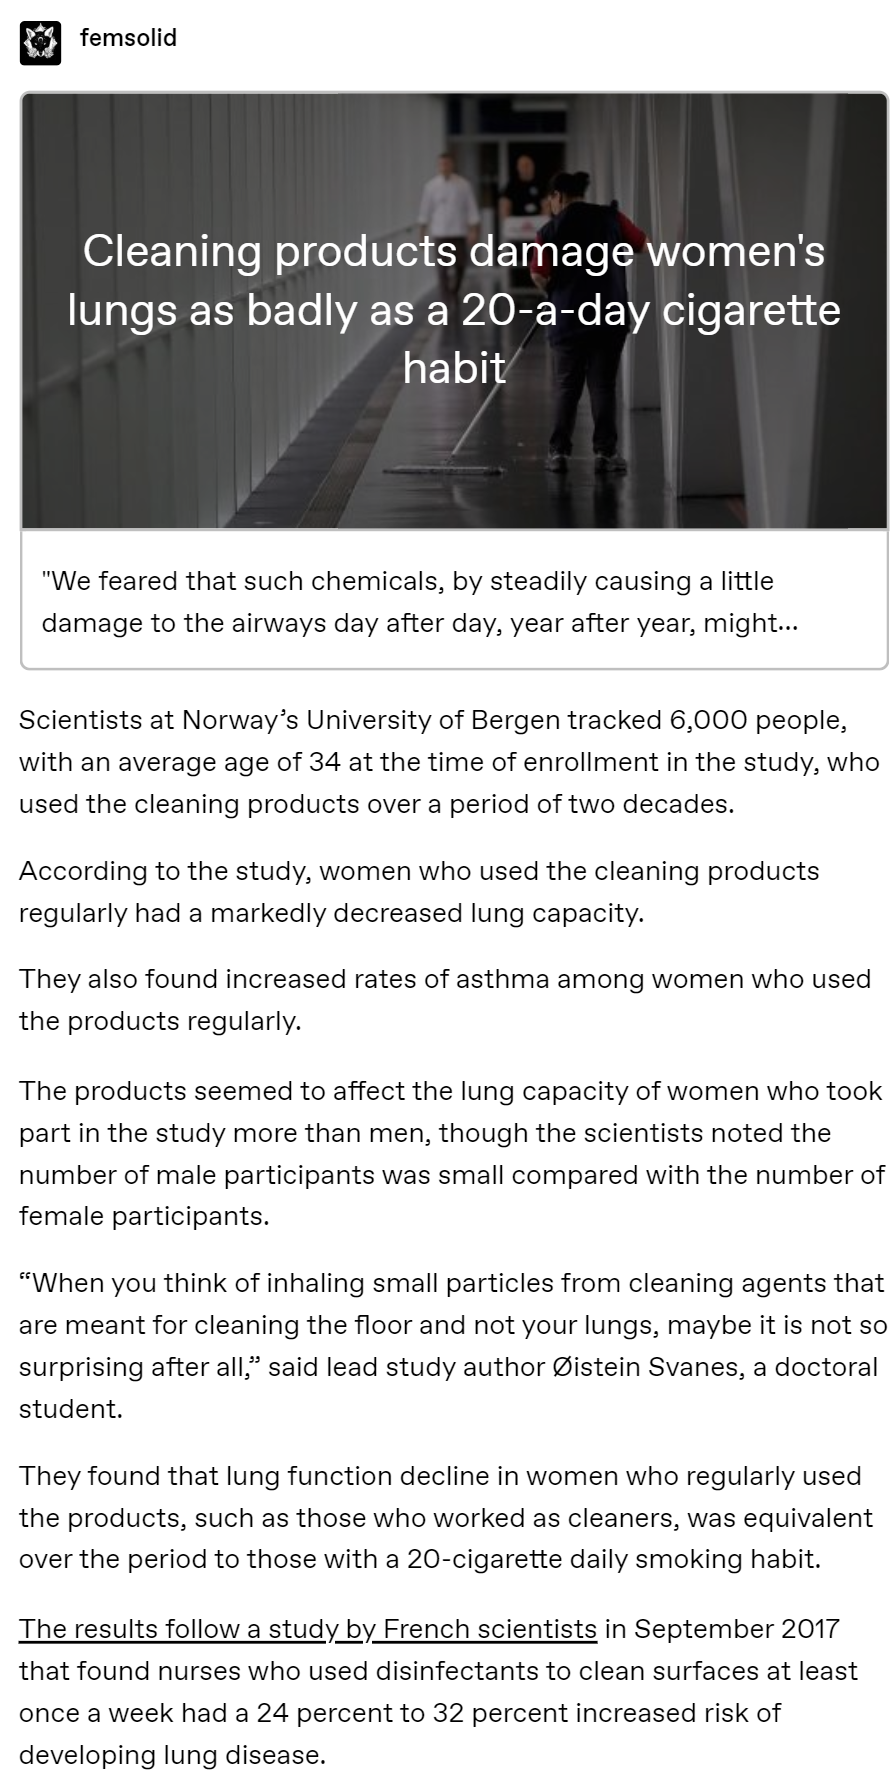 Photo of Cleaning products damage women's lungs as badly as a 20-a-day cigarette habit